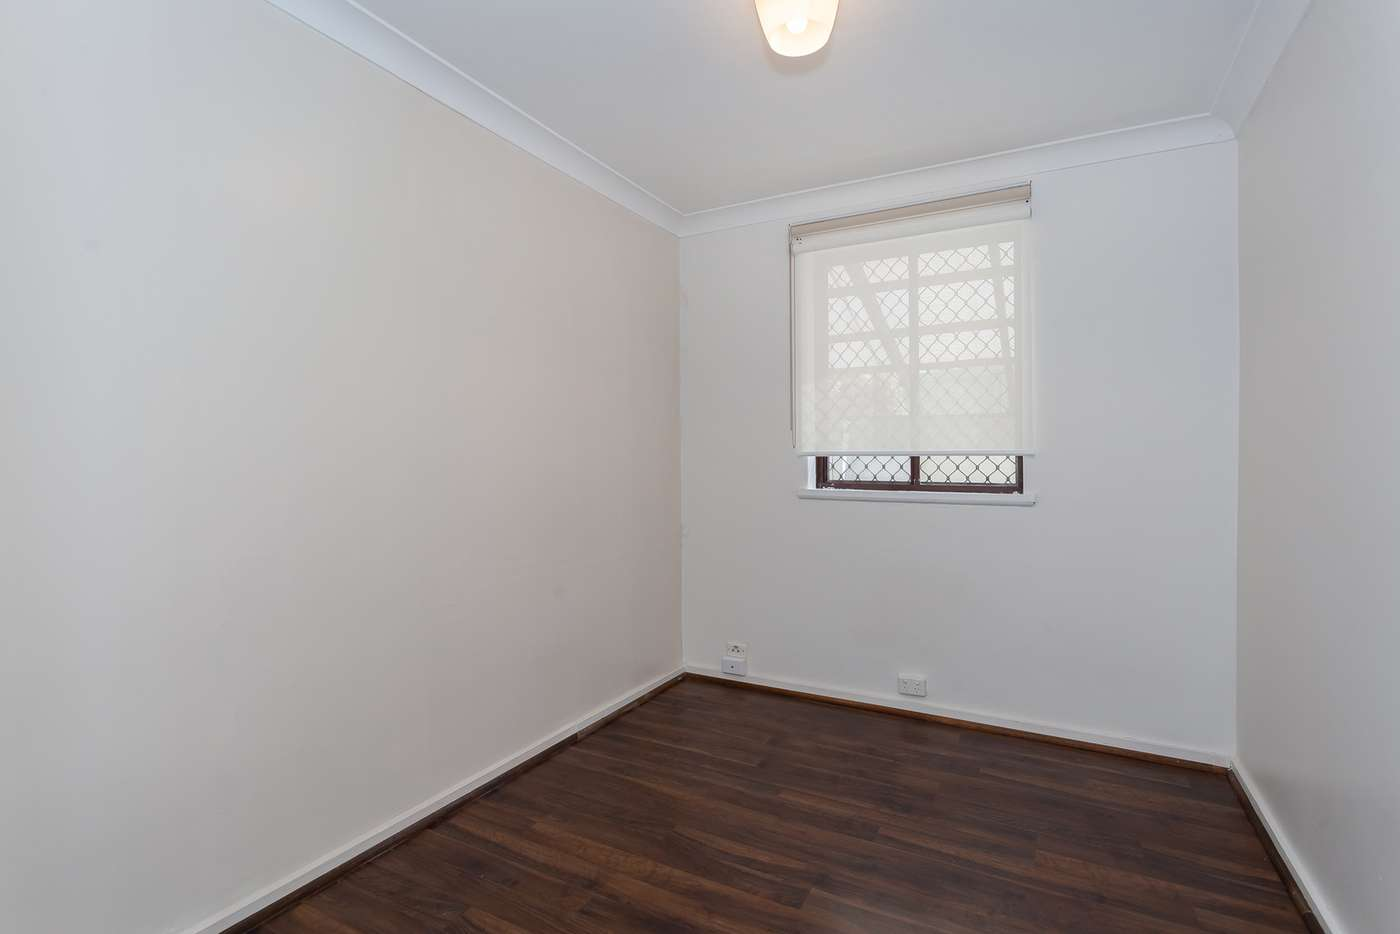 Sixth view of Homely house listing, 2/23 Kinsella Street, Joondanna WA 6060